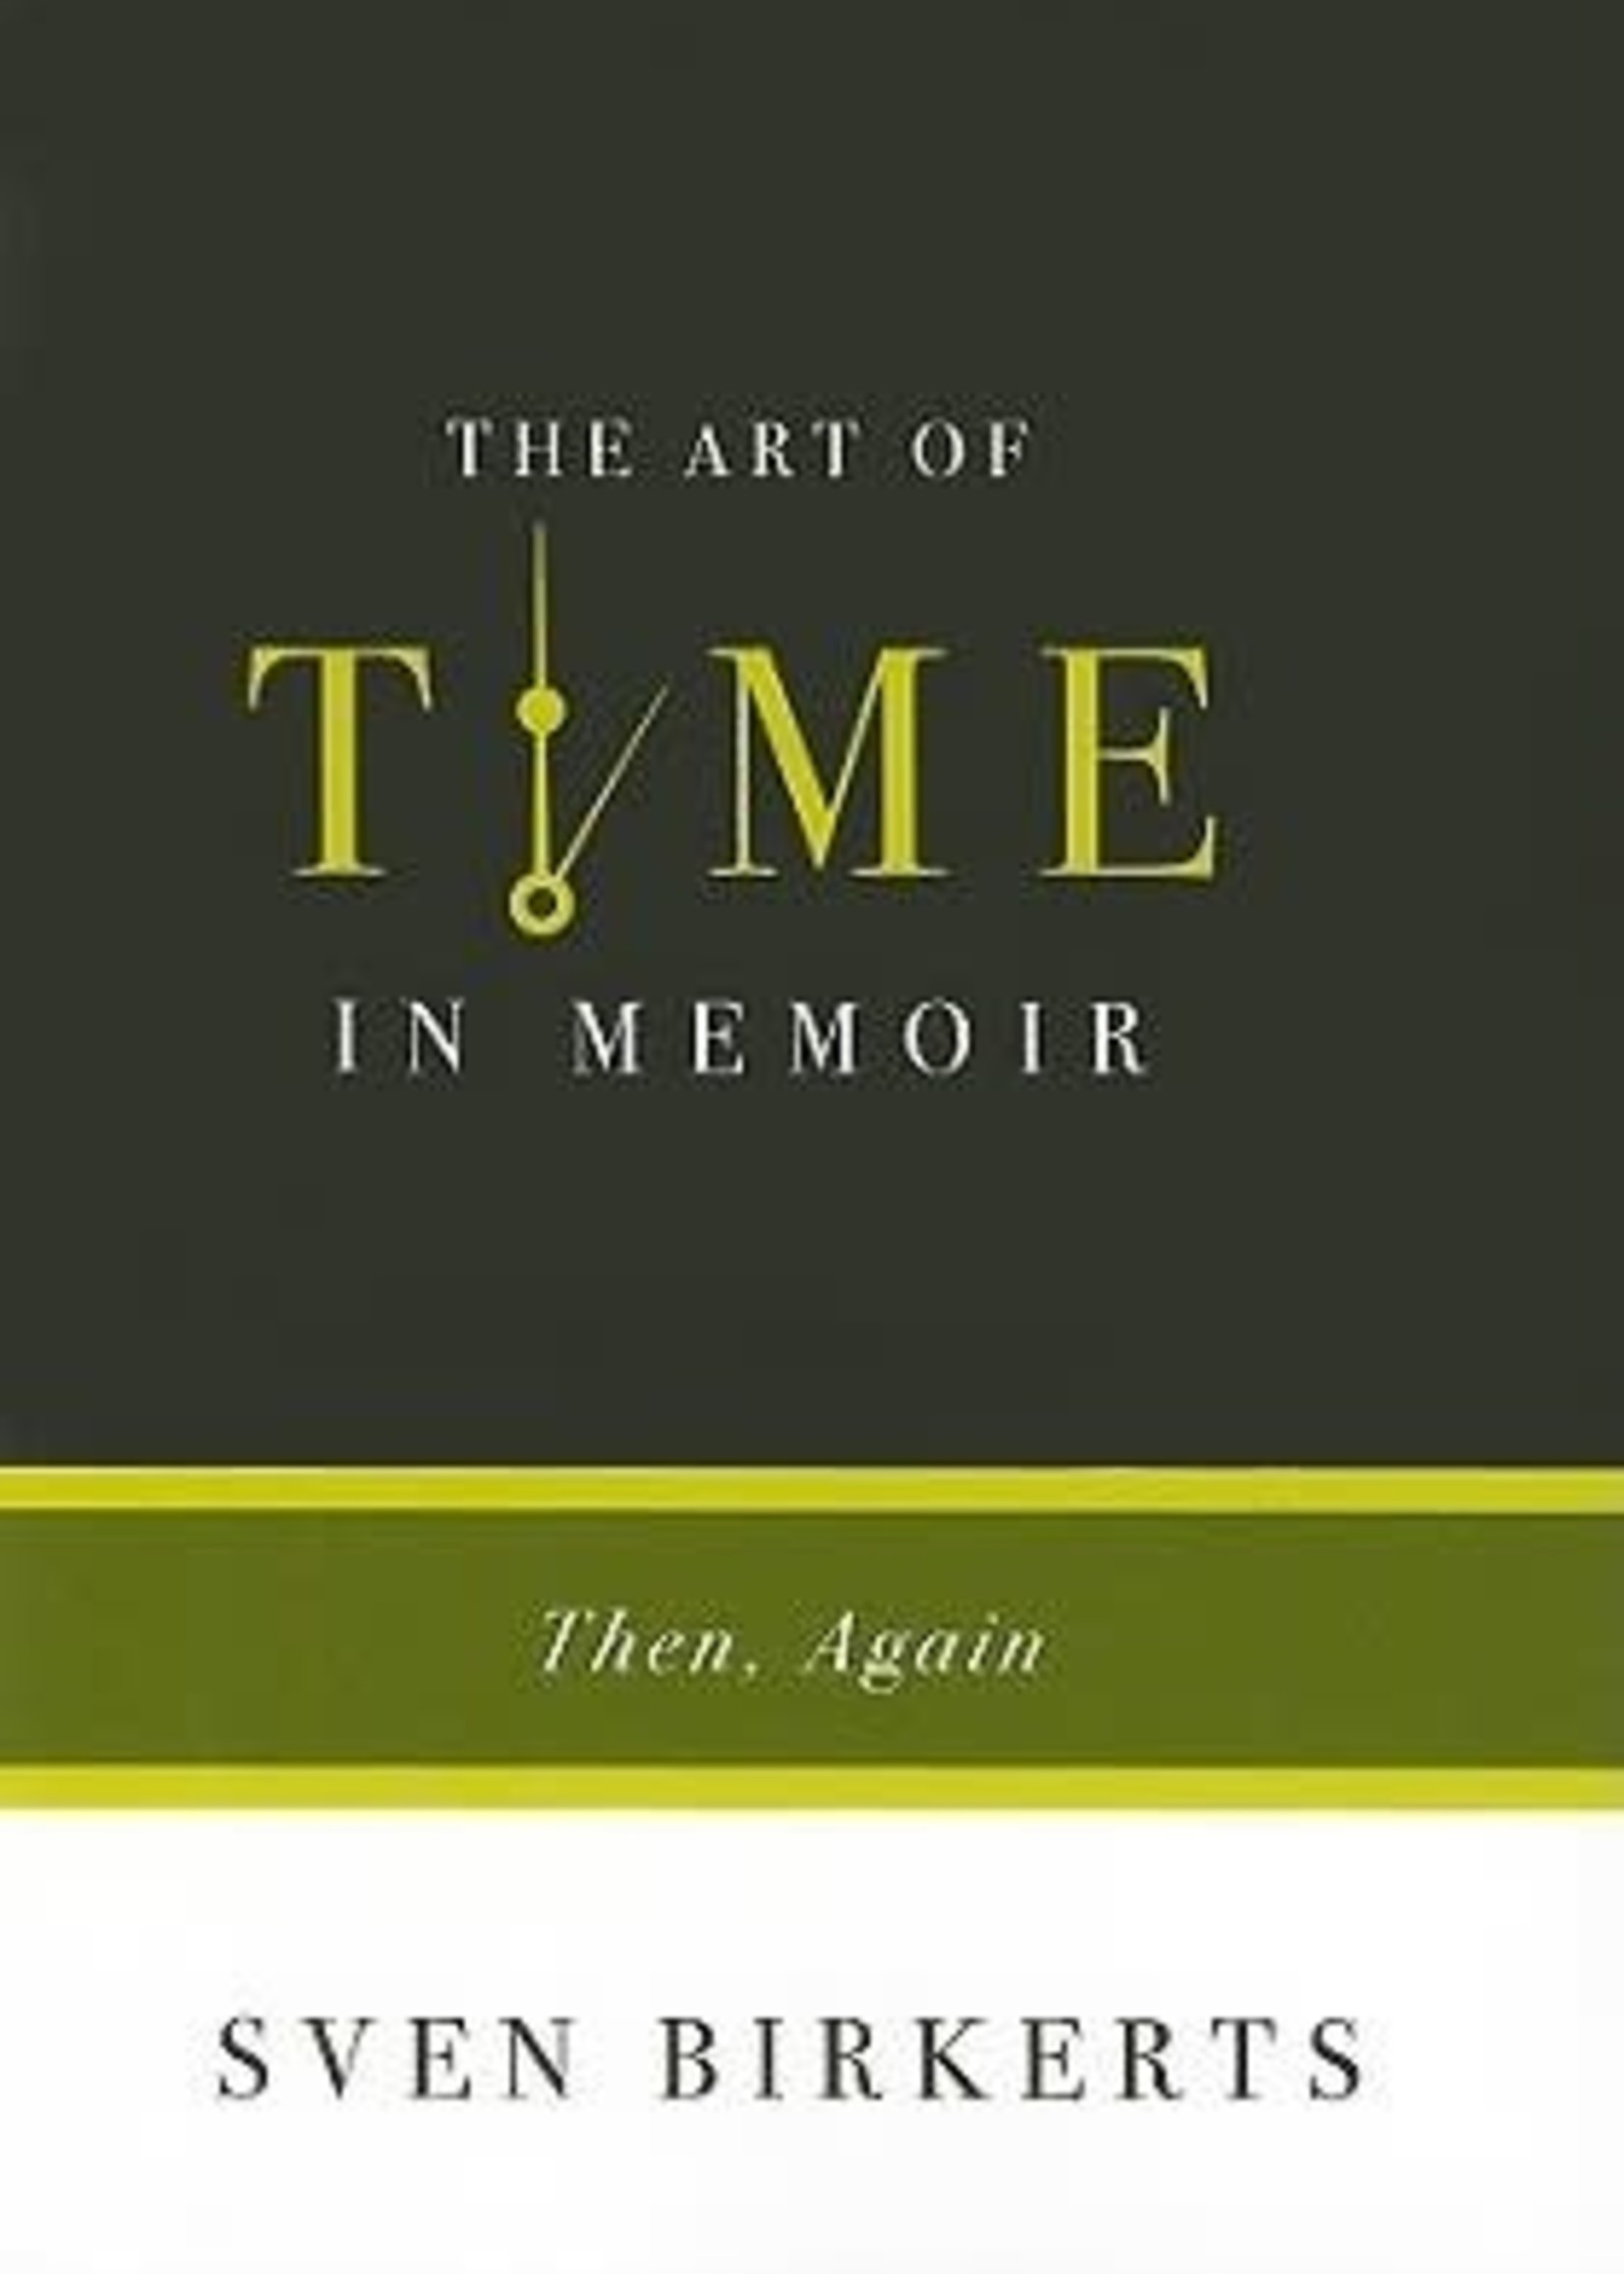 The Art of Time in Memoir: Then, Again by Sven Birkerts